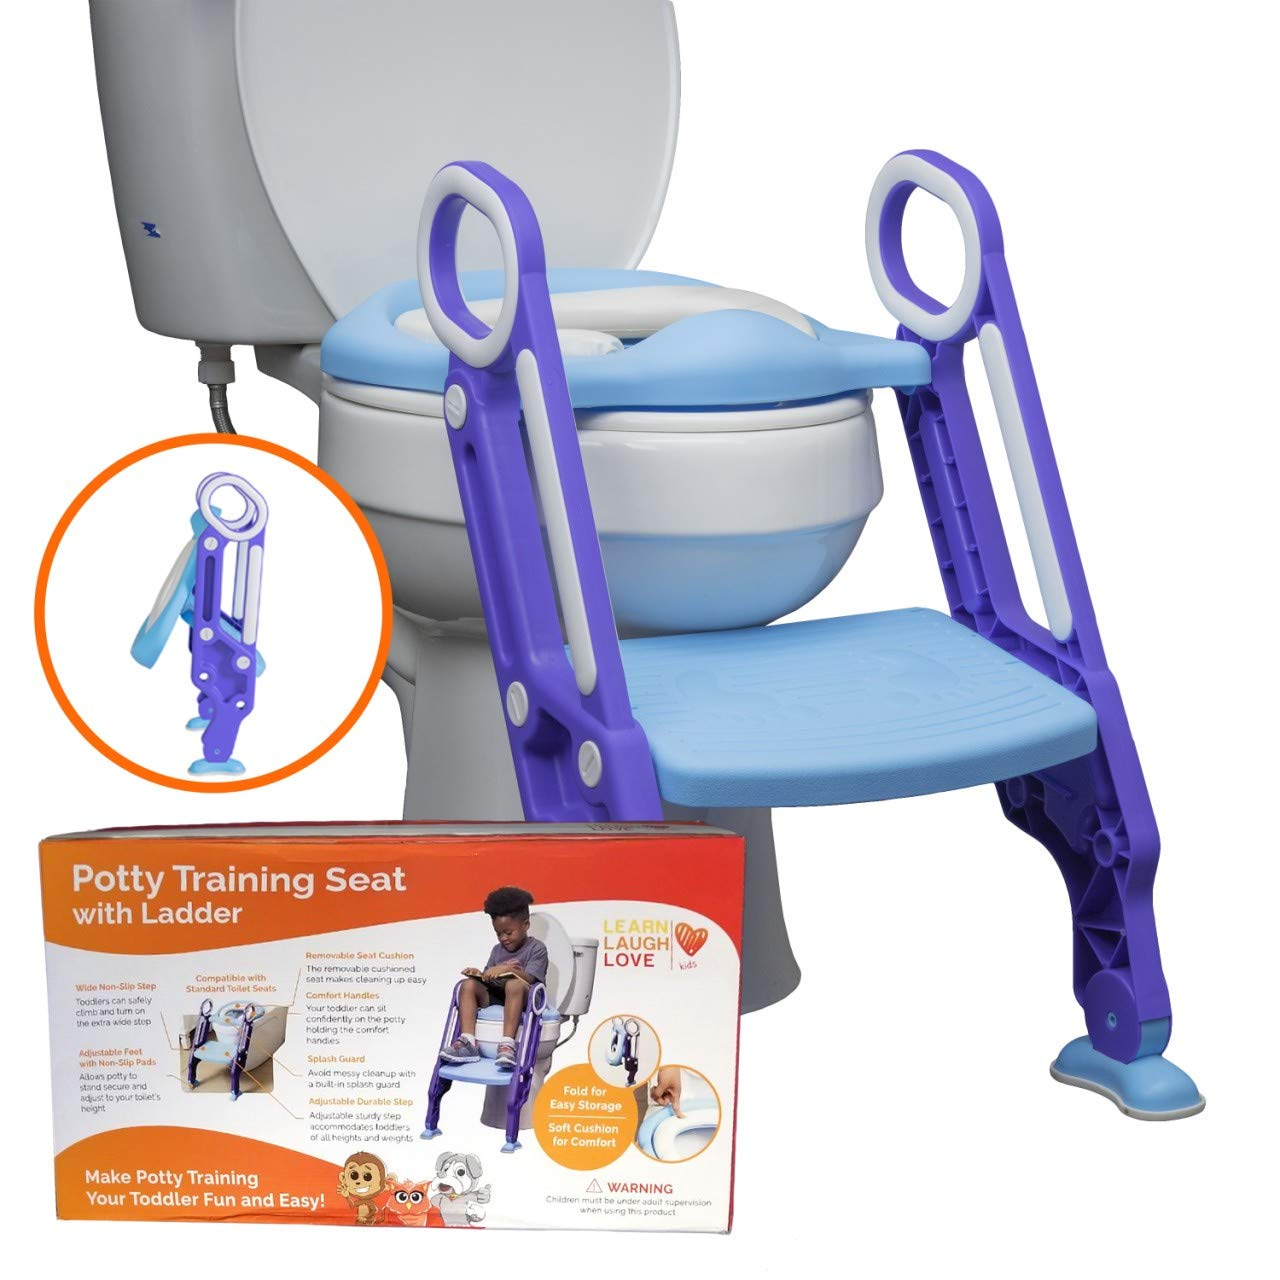 Potty Training Seat with Ladder by Learn Laugh Love Kids - Potty Ladder for Boys & Girls Adjusts to Fit Most Toilets & Folds to Become Portable Potty Seat for Toddler - Easy & Safe Potty Chair by Learn Laugh Love Kids